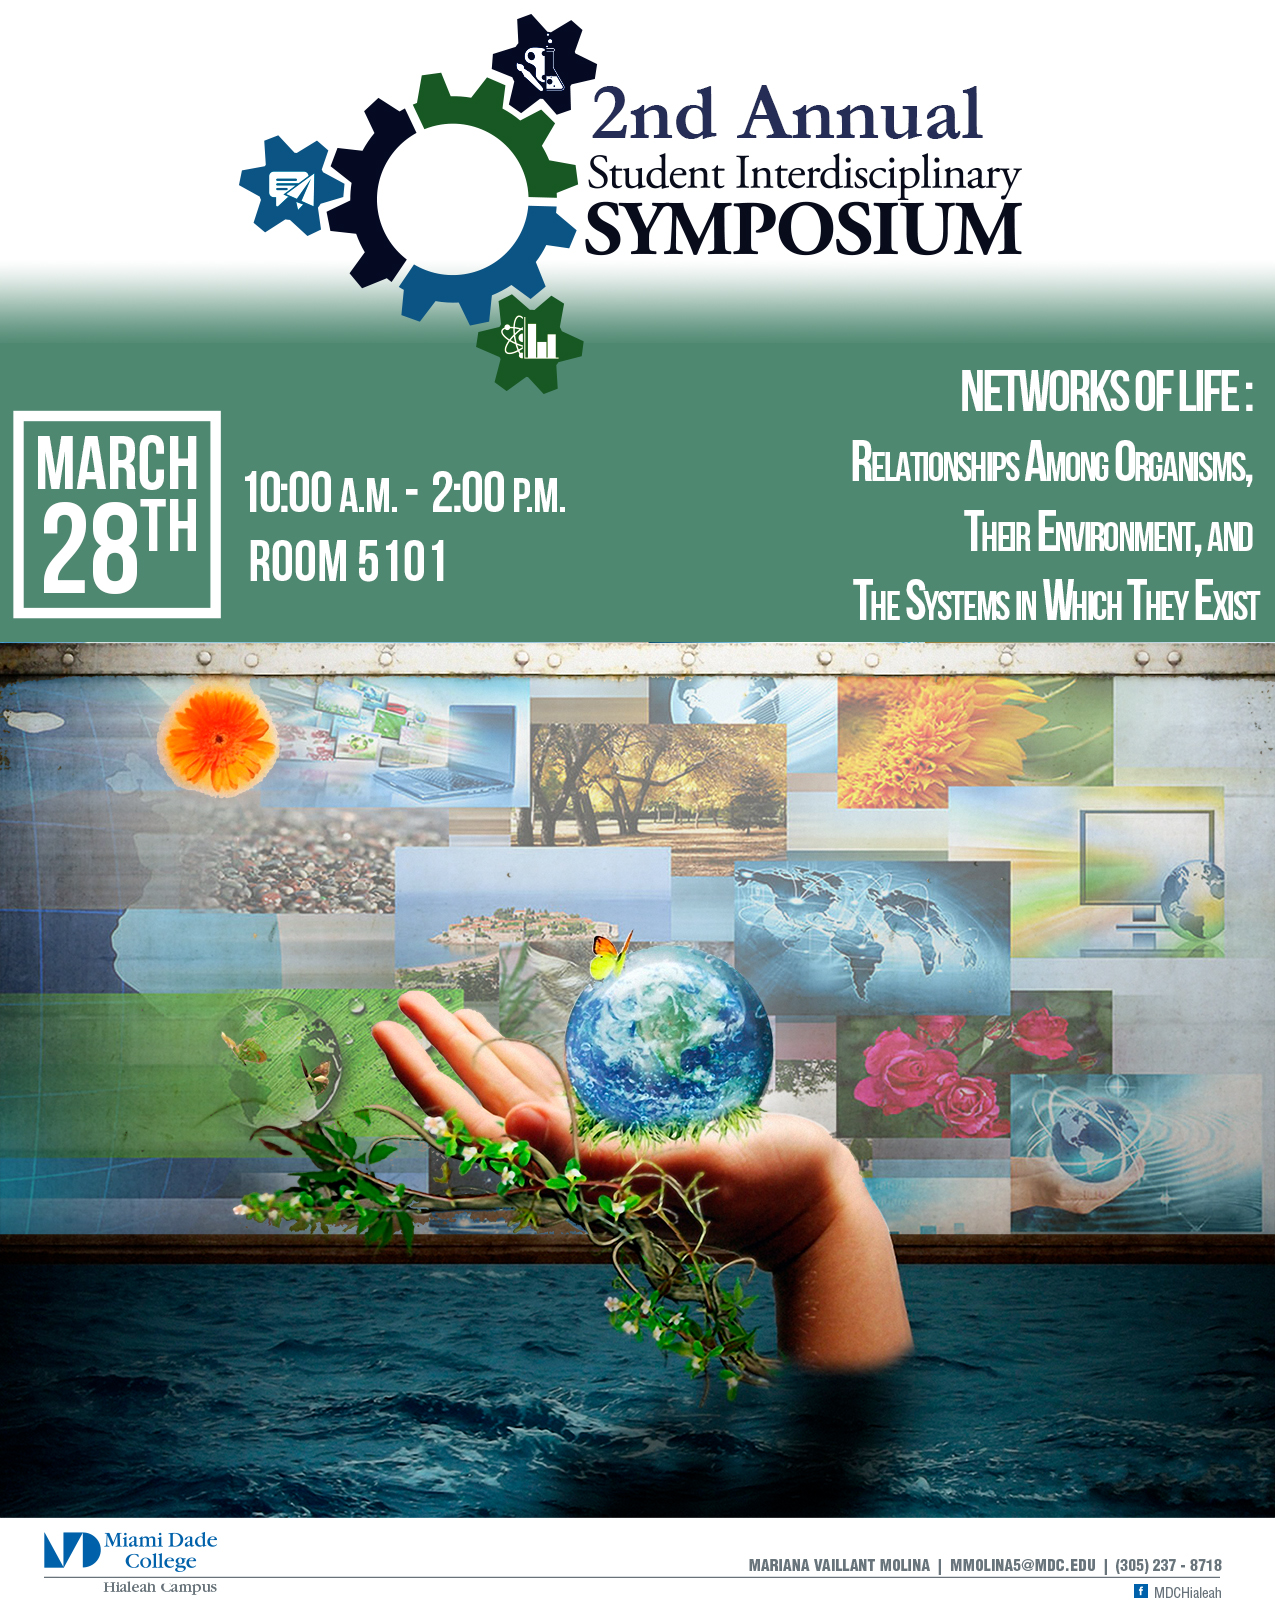 2nd Annual Student Interdisciplinary Symposium - March 28, 2018, 10:00 - 2:00 pm, room 5101